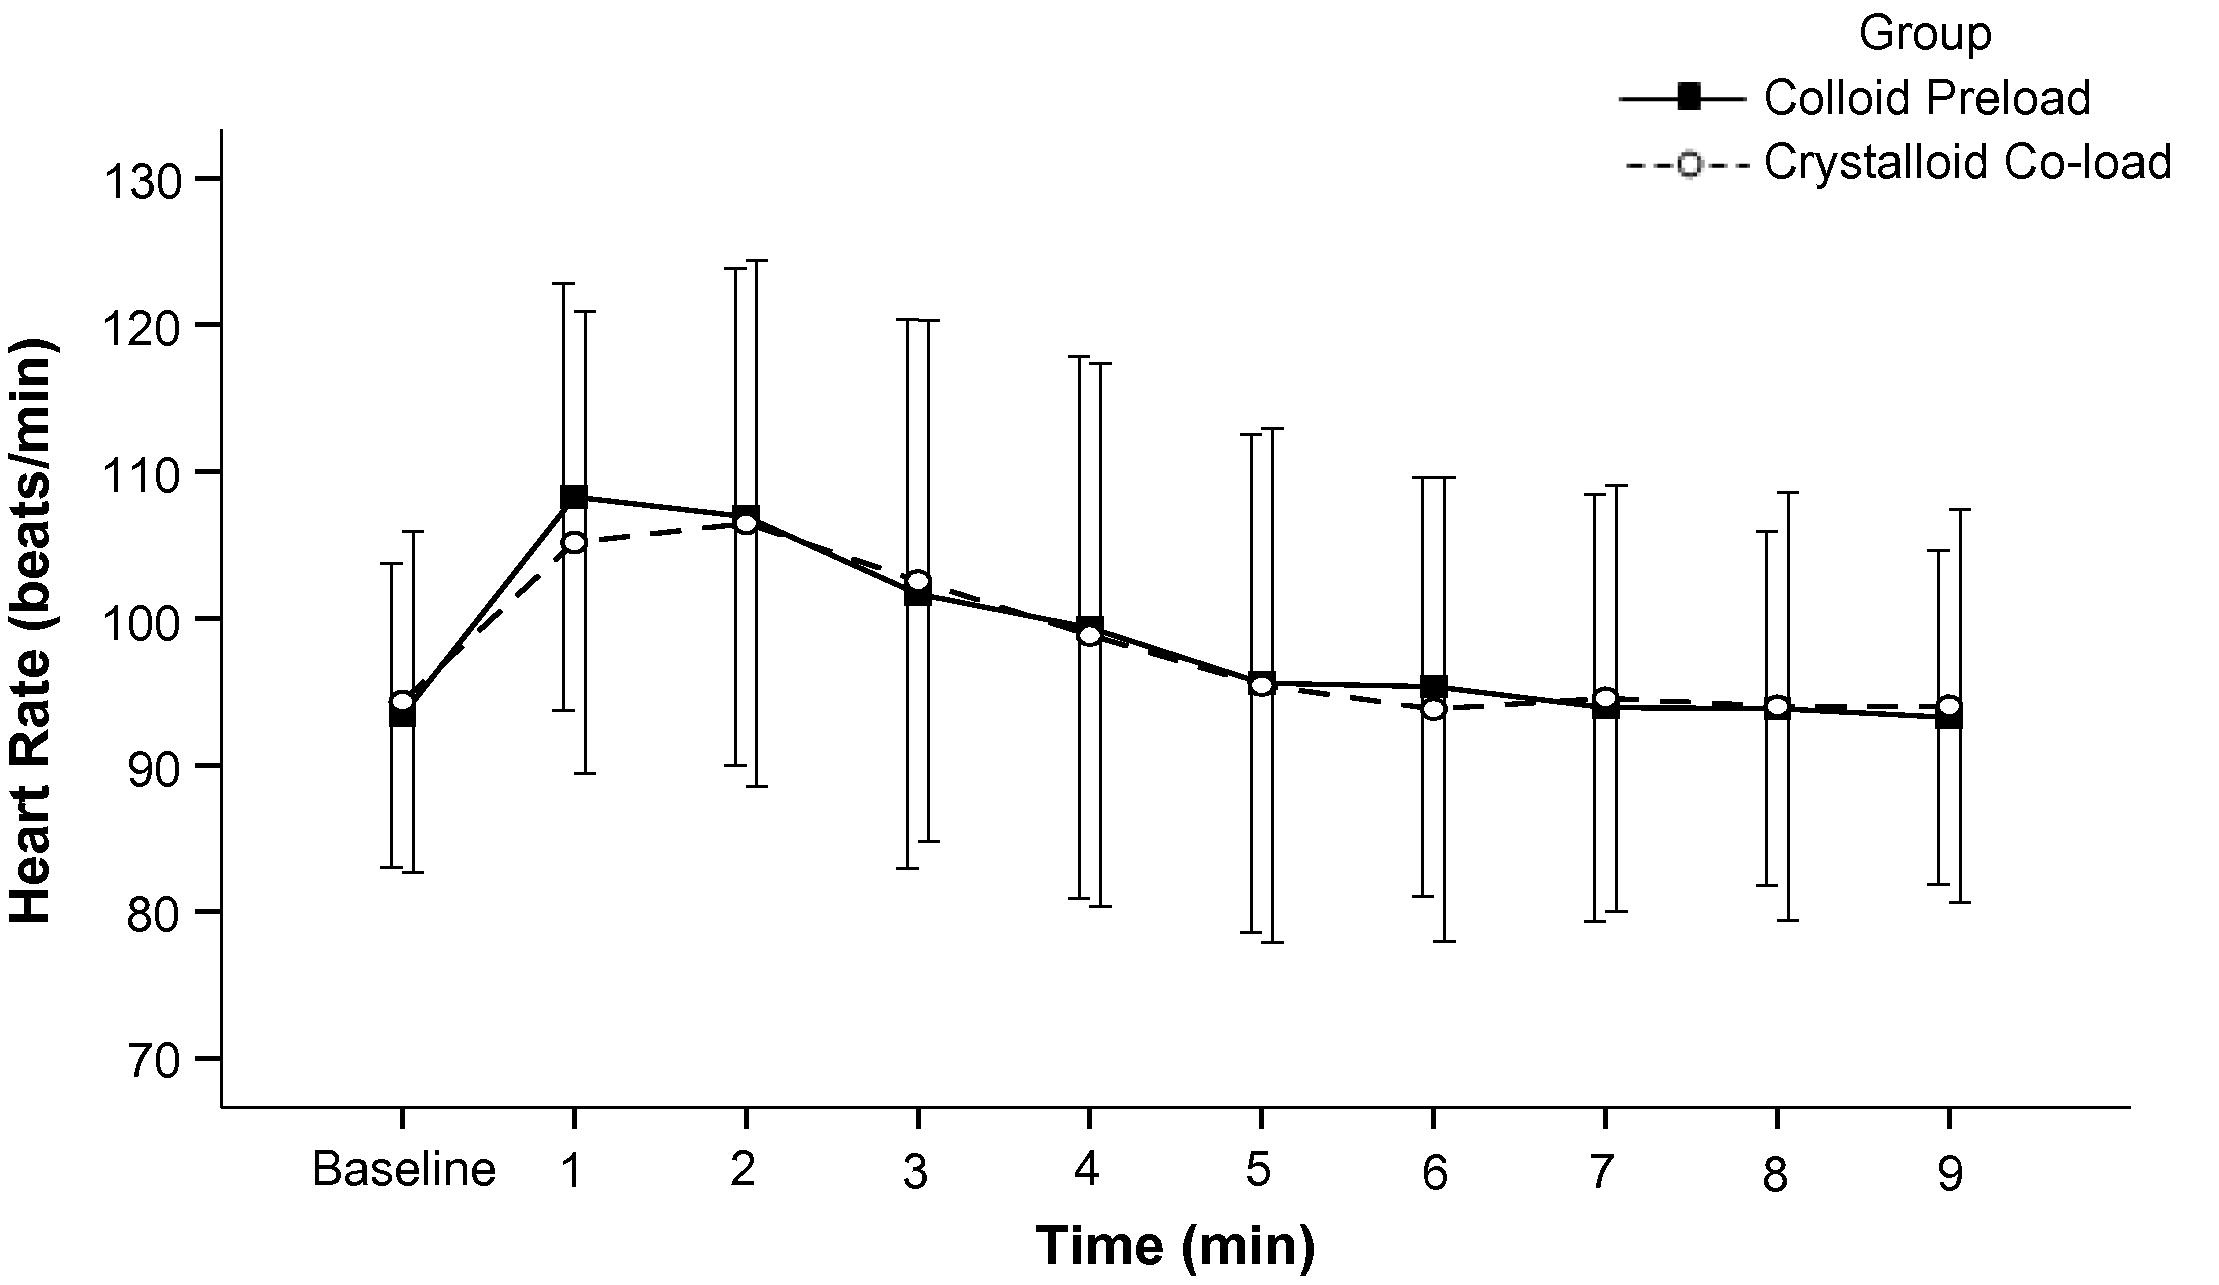 Comparison between colloid preload and crystalloid co-load